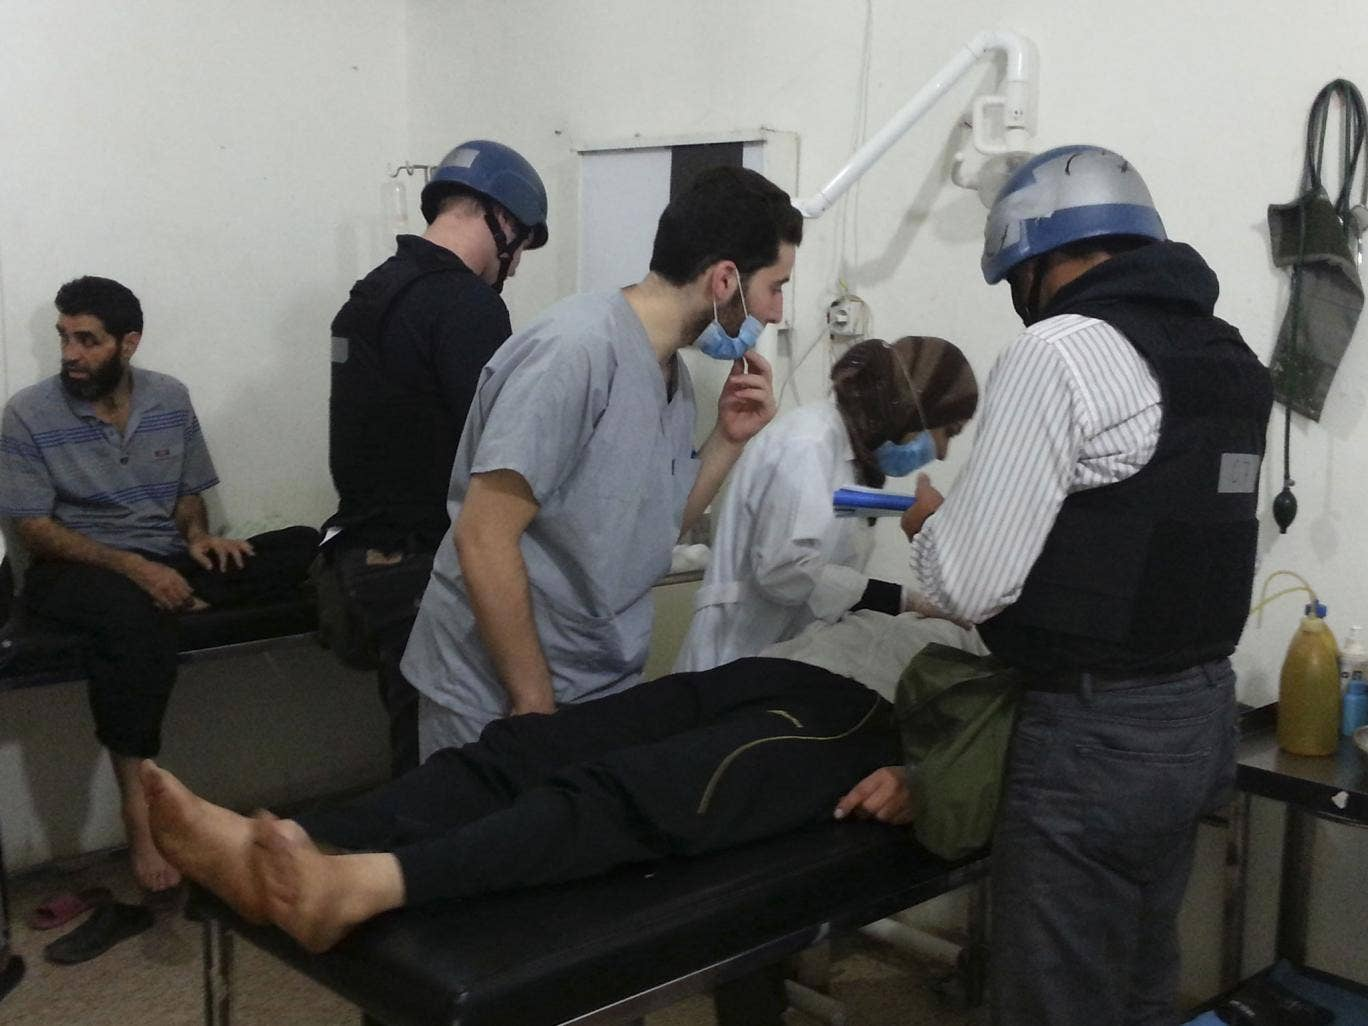 U.N. chemical weapons experts visit people affected by an apparent gas attack